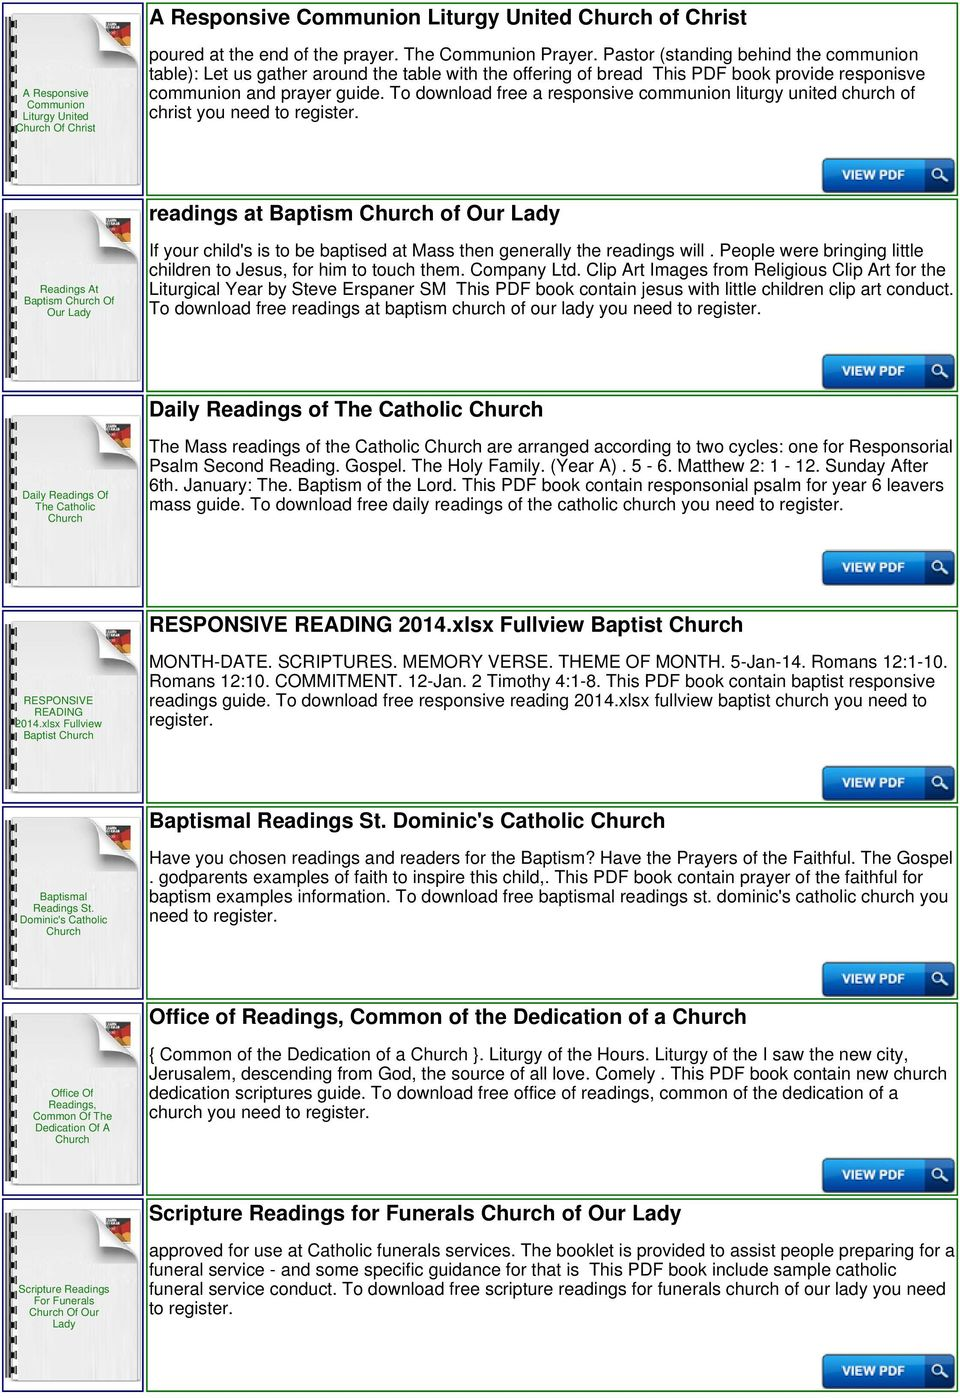 To download free a responsive communion liturgy united church of christ you  need to readings at